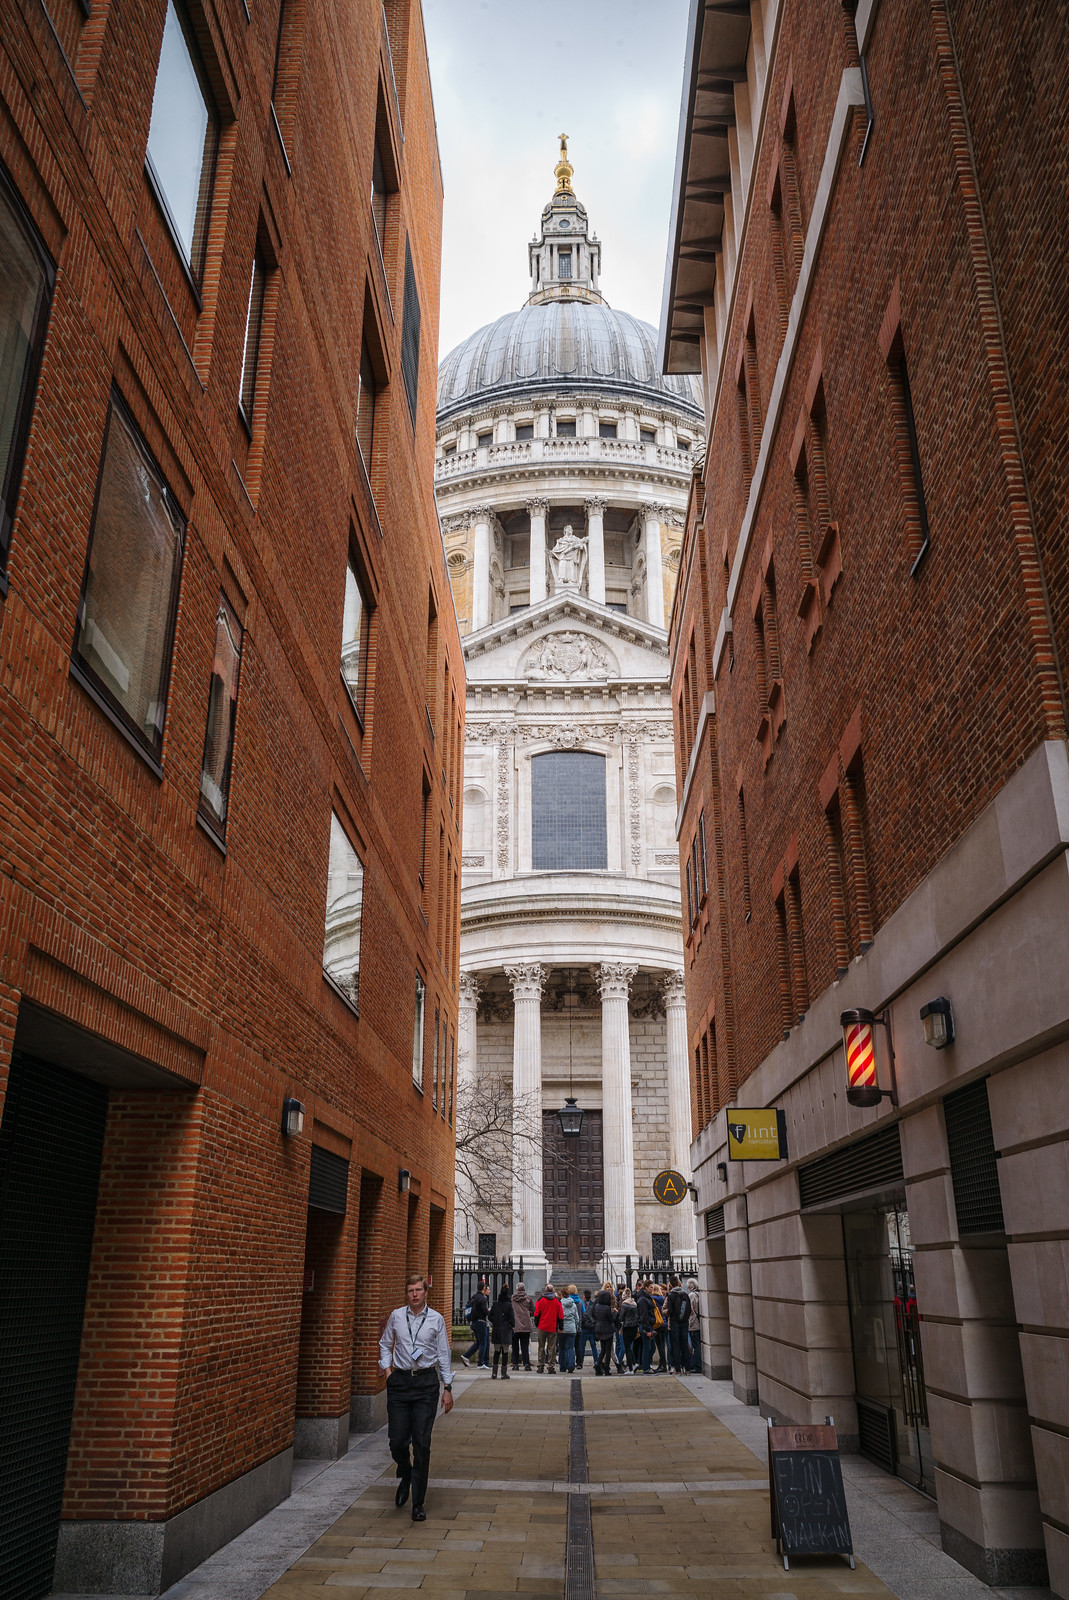 Sliver of St Paul's